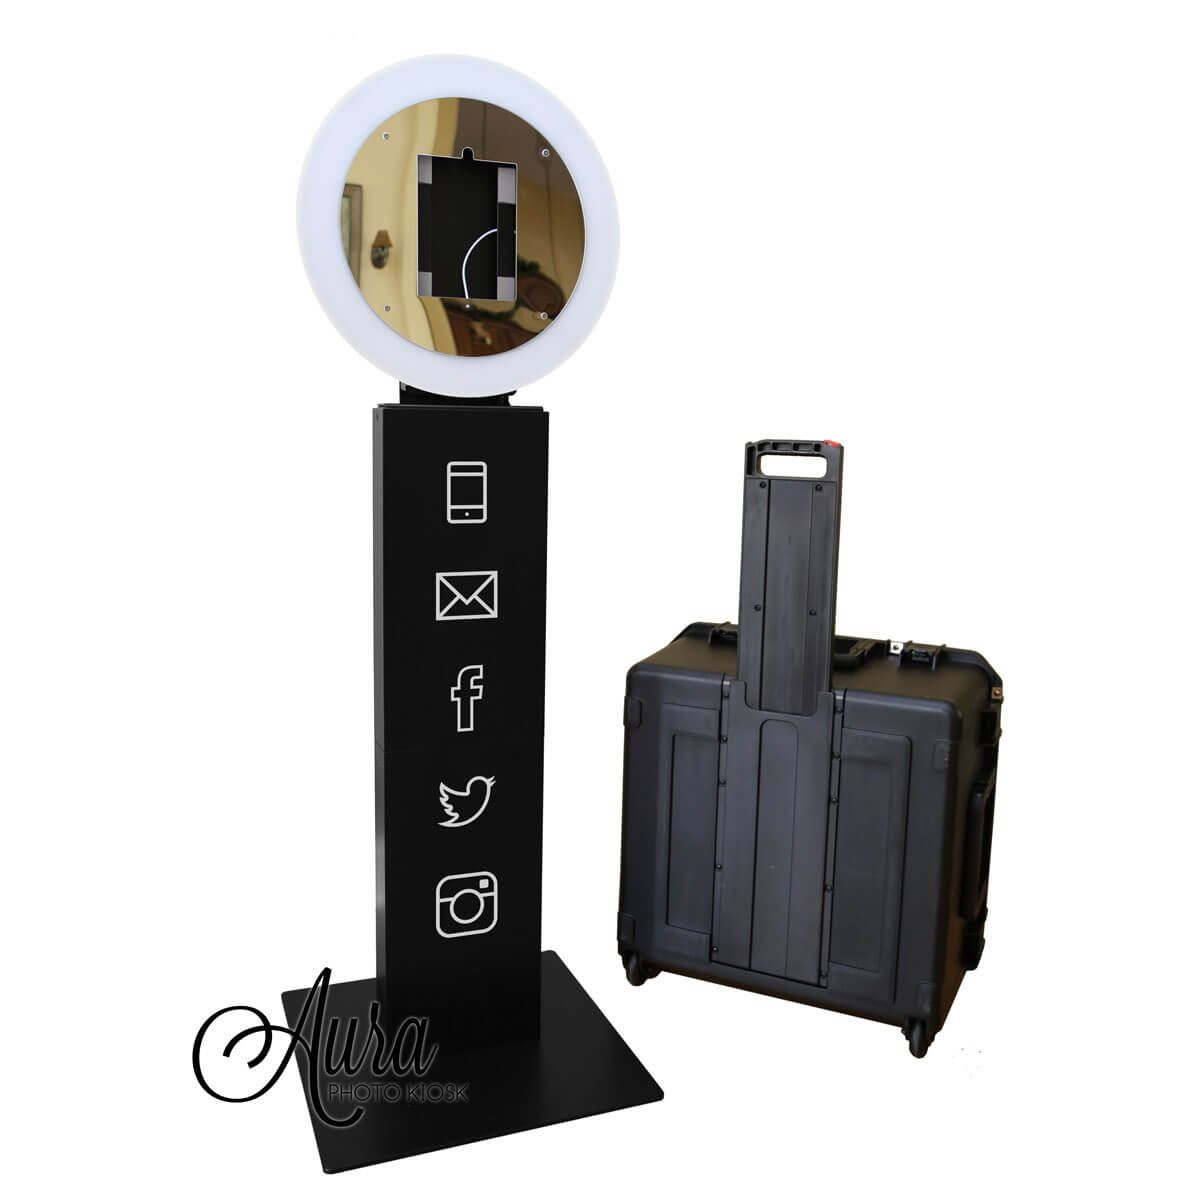 Award Winning Ring Light IPad Photo Kiosk For The Portable Booth Market Pro 10 Easy To Setup Ultra With Premium Build